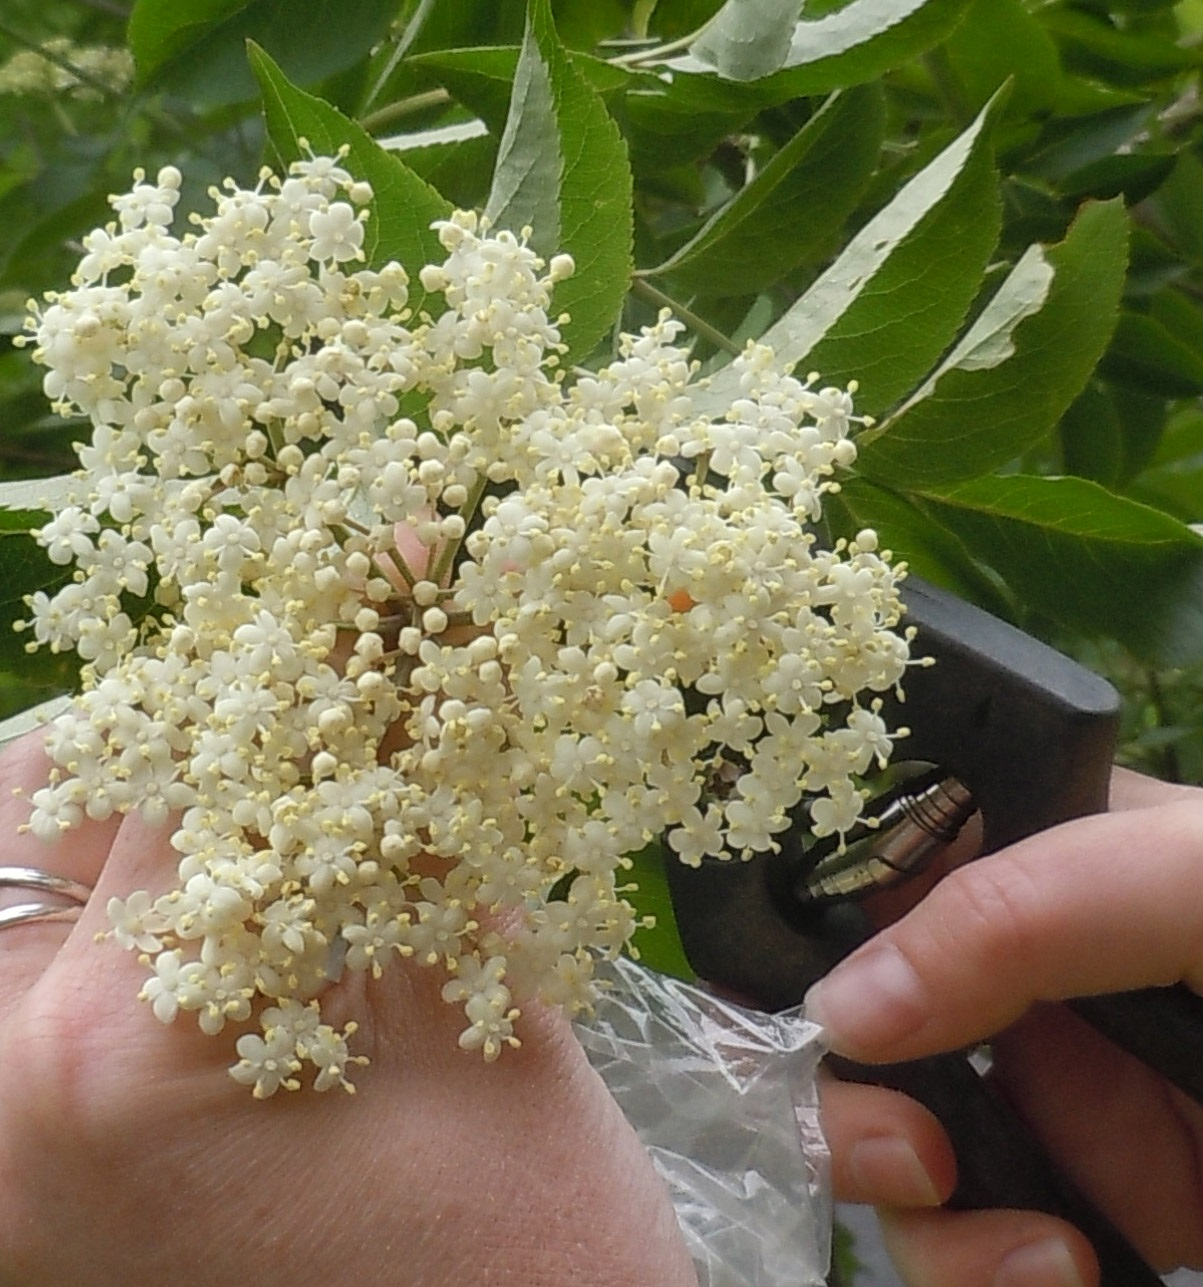 Picking elder flowers